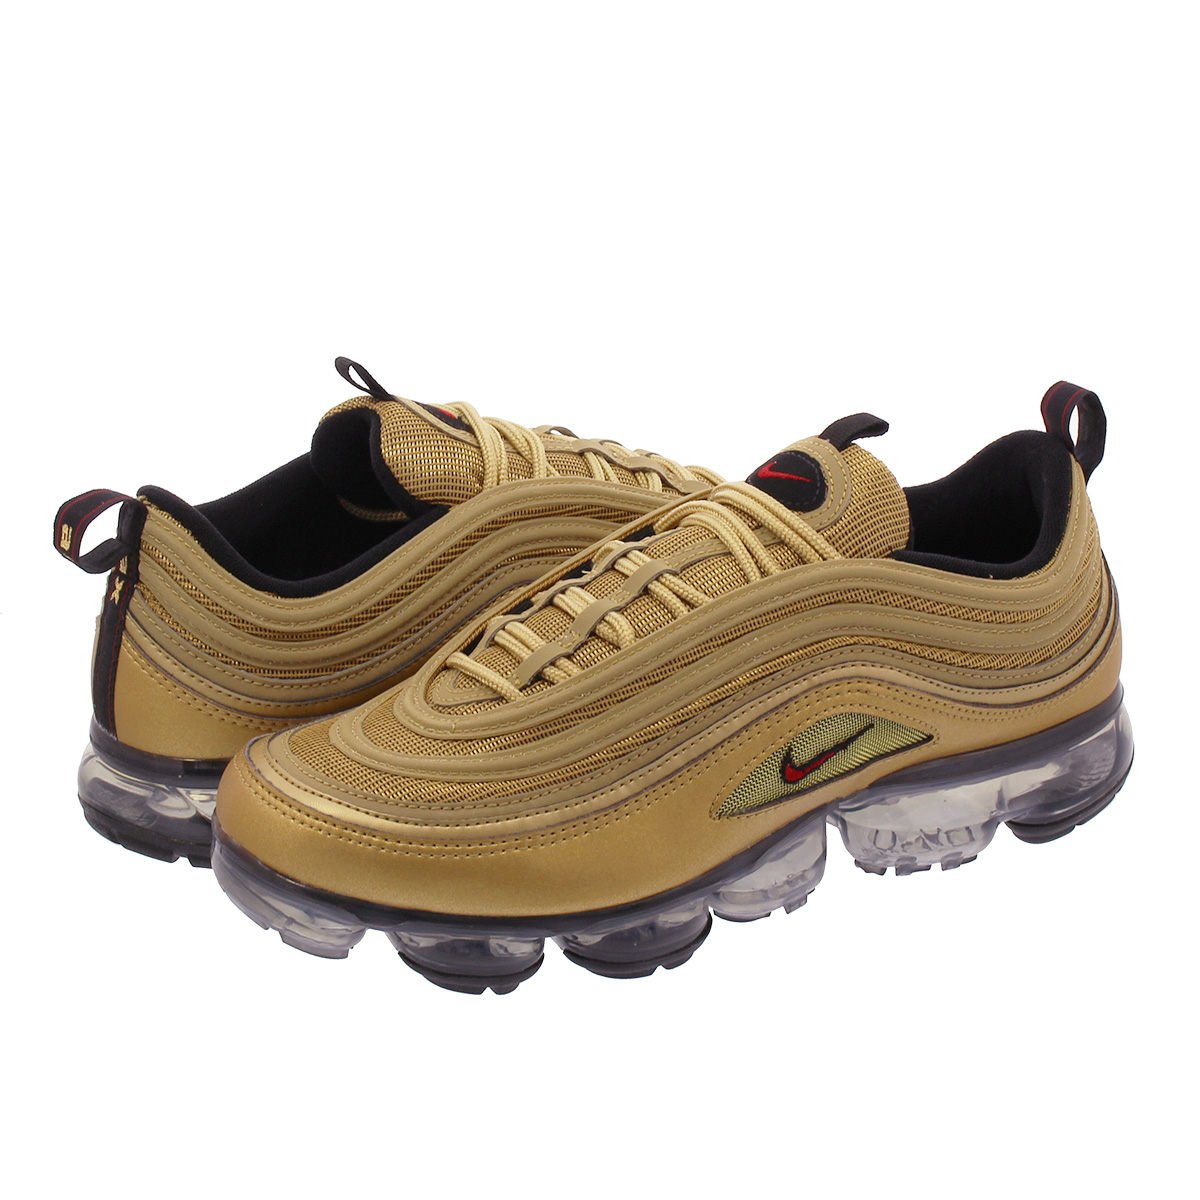 best service ad797 d7802 NIKE AIR VAPORMAX 97 Nike air vapor max 97 METALLIC GOLD/VARSITY  RED/BLACK/WHITE aj7291-700